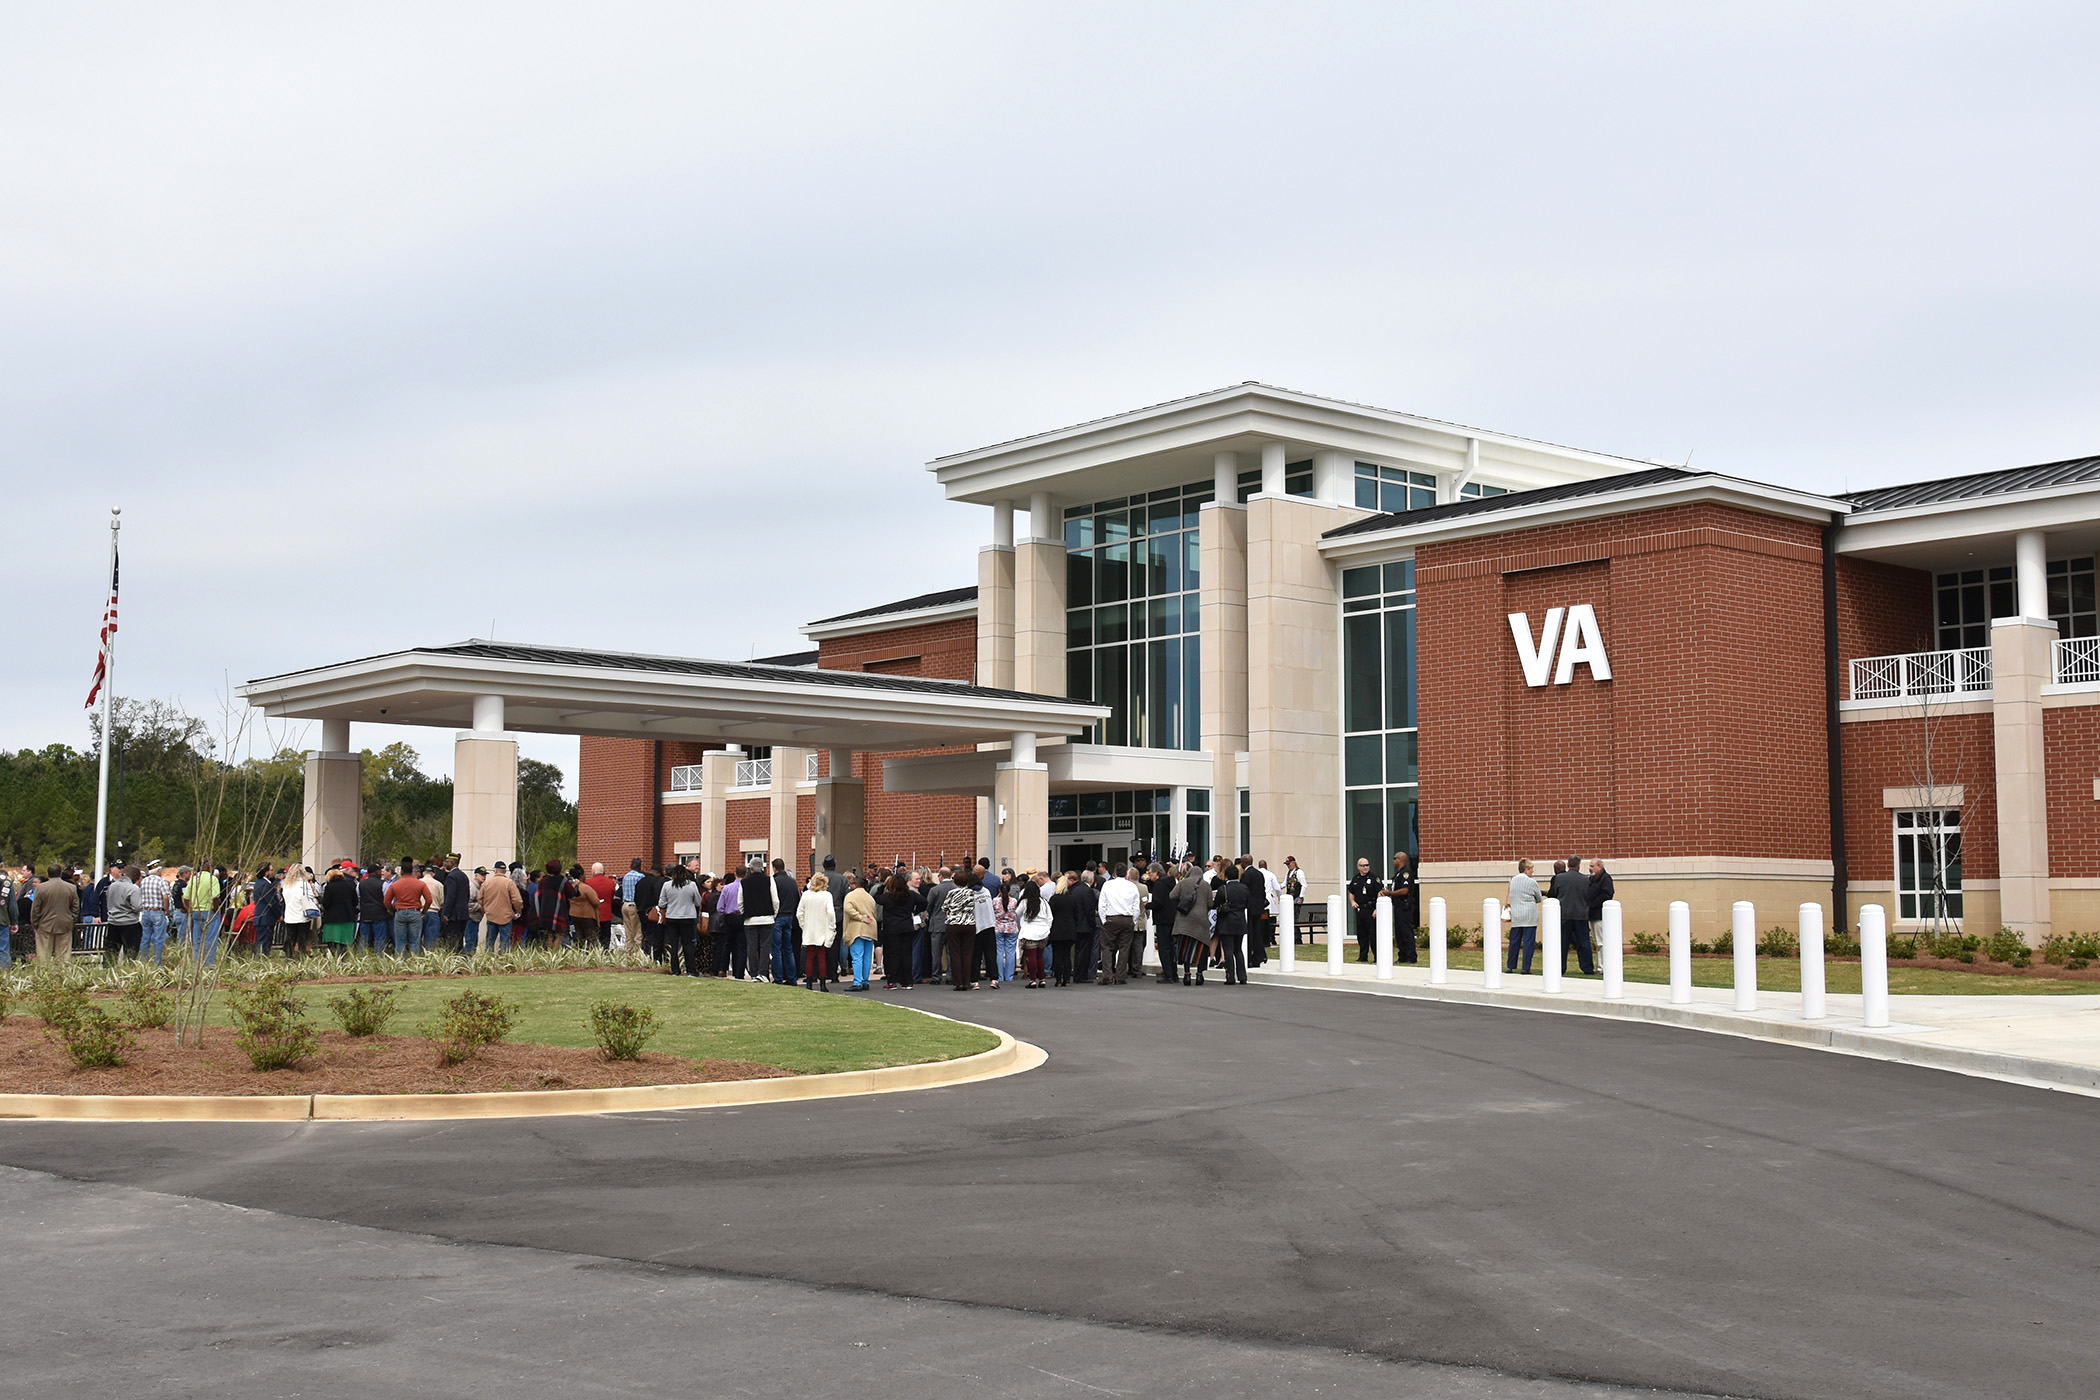 Mobil L New Mobile, Alabama Va Outpatient Clinic Set To Open